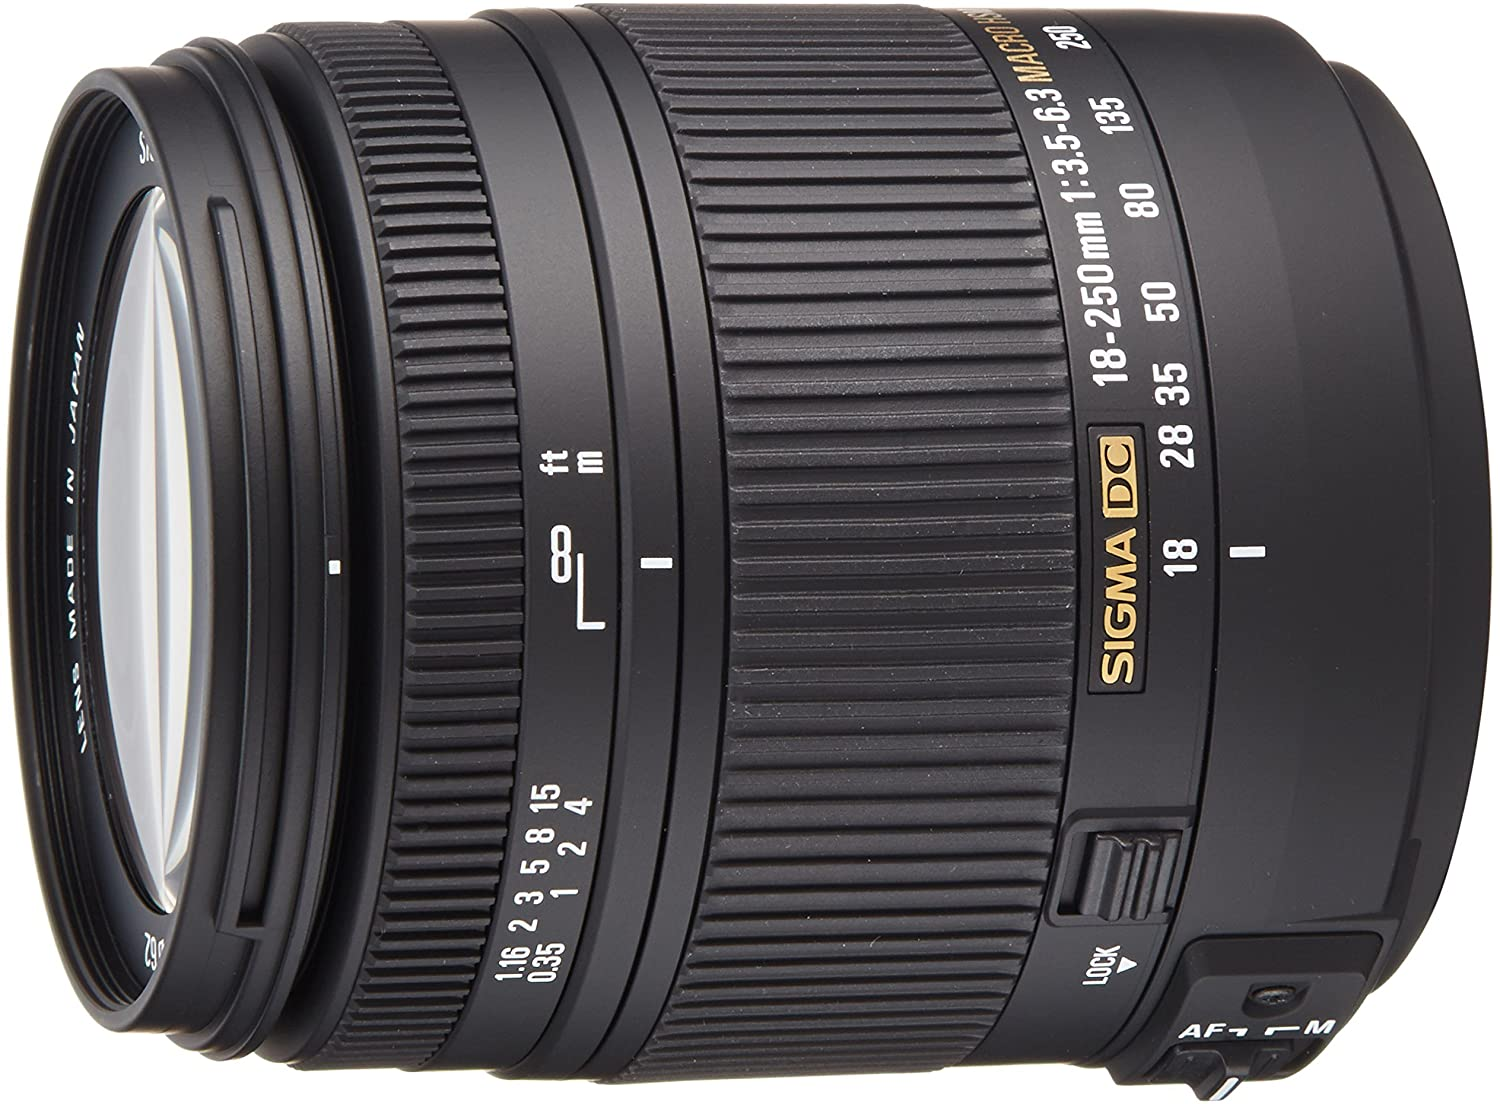 Sigma - best macro lens for canon